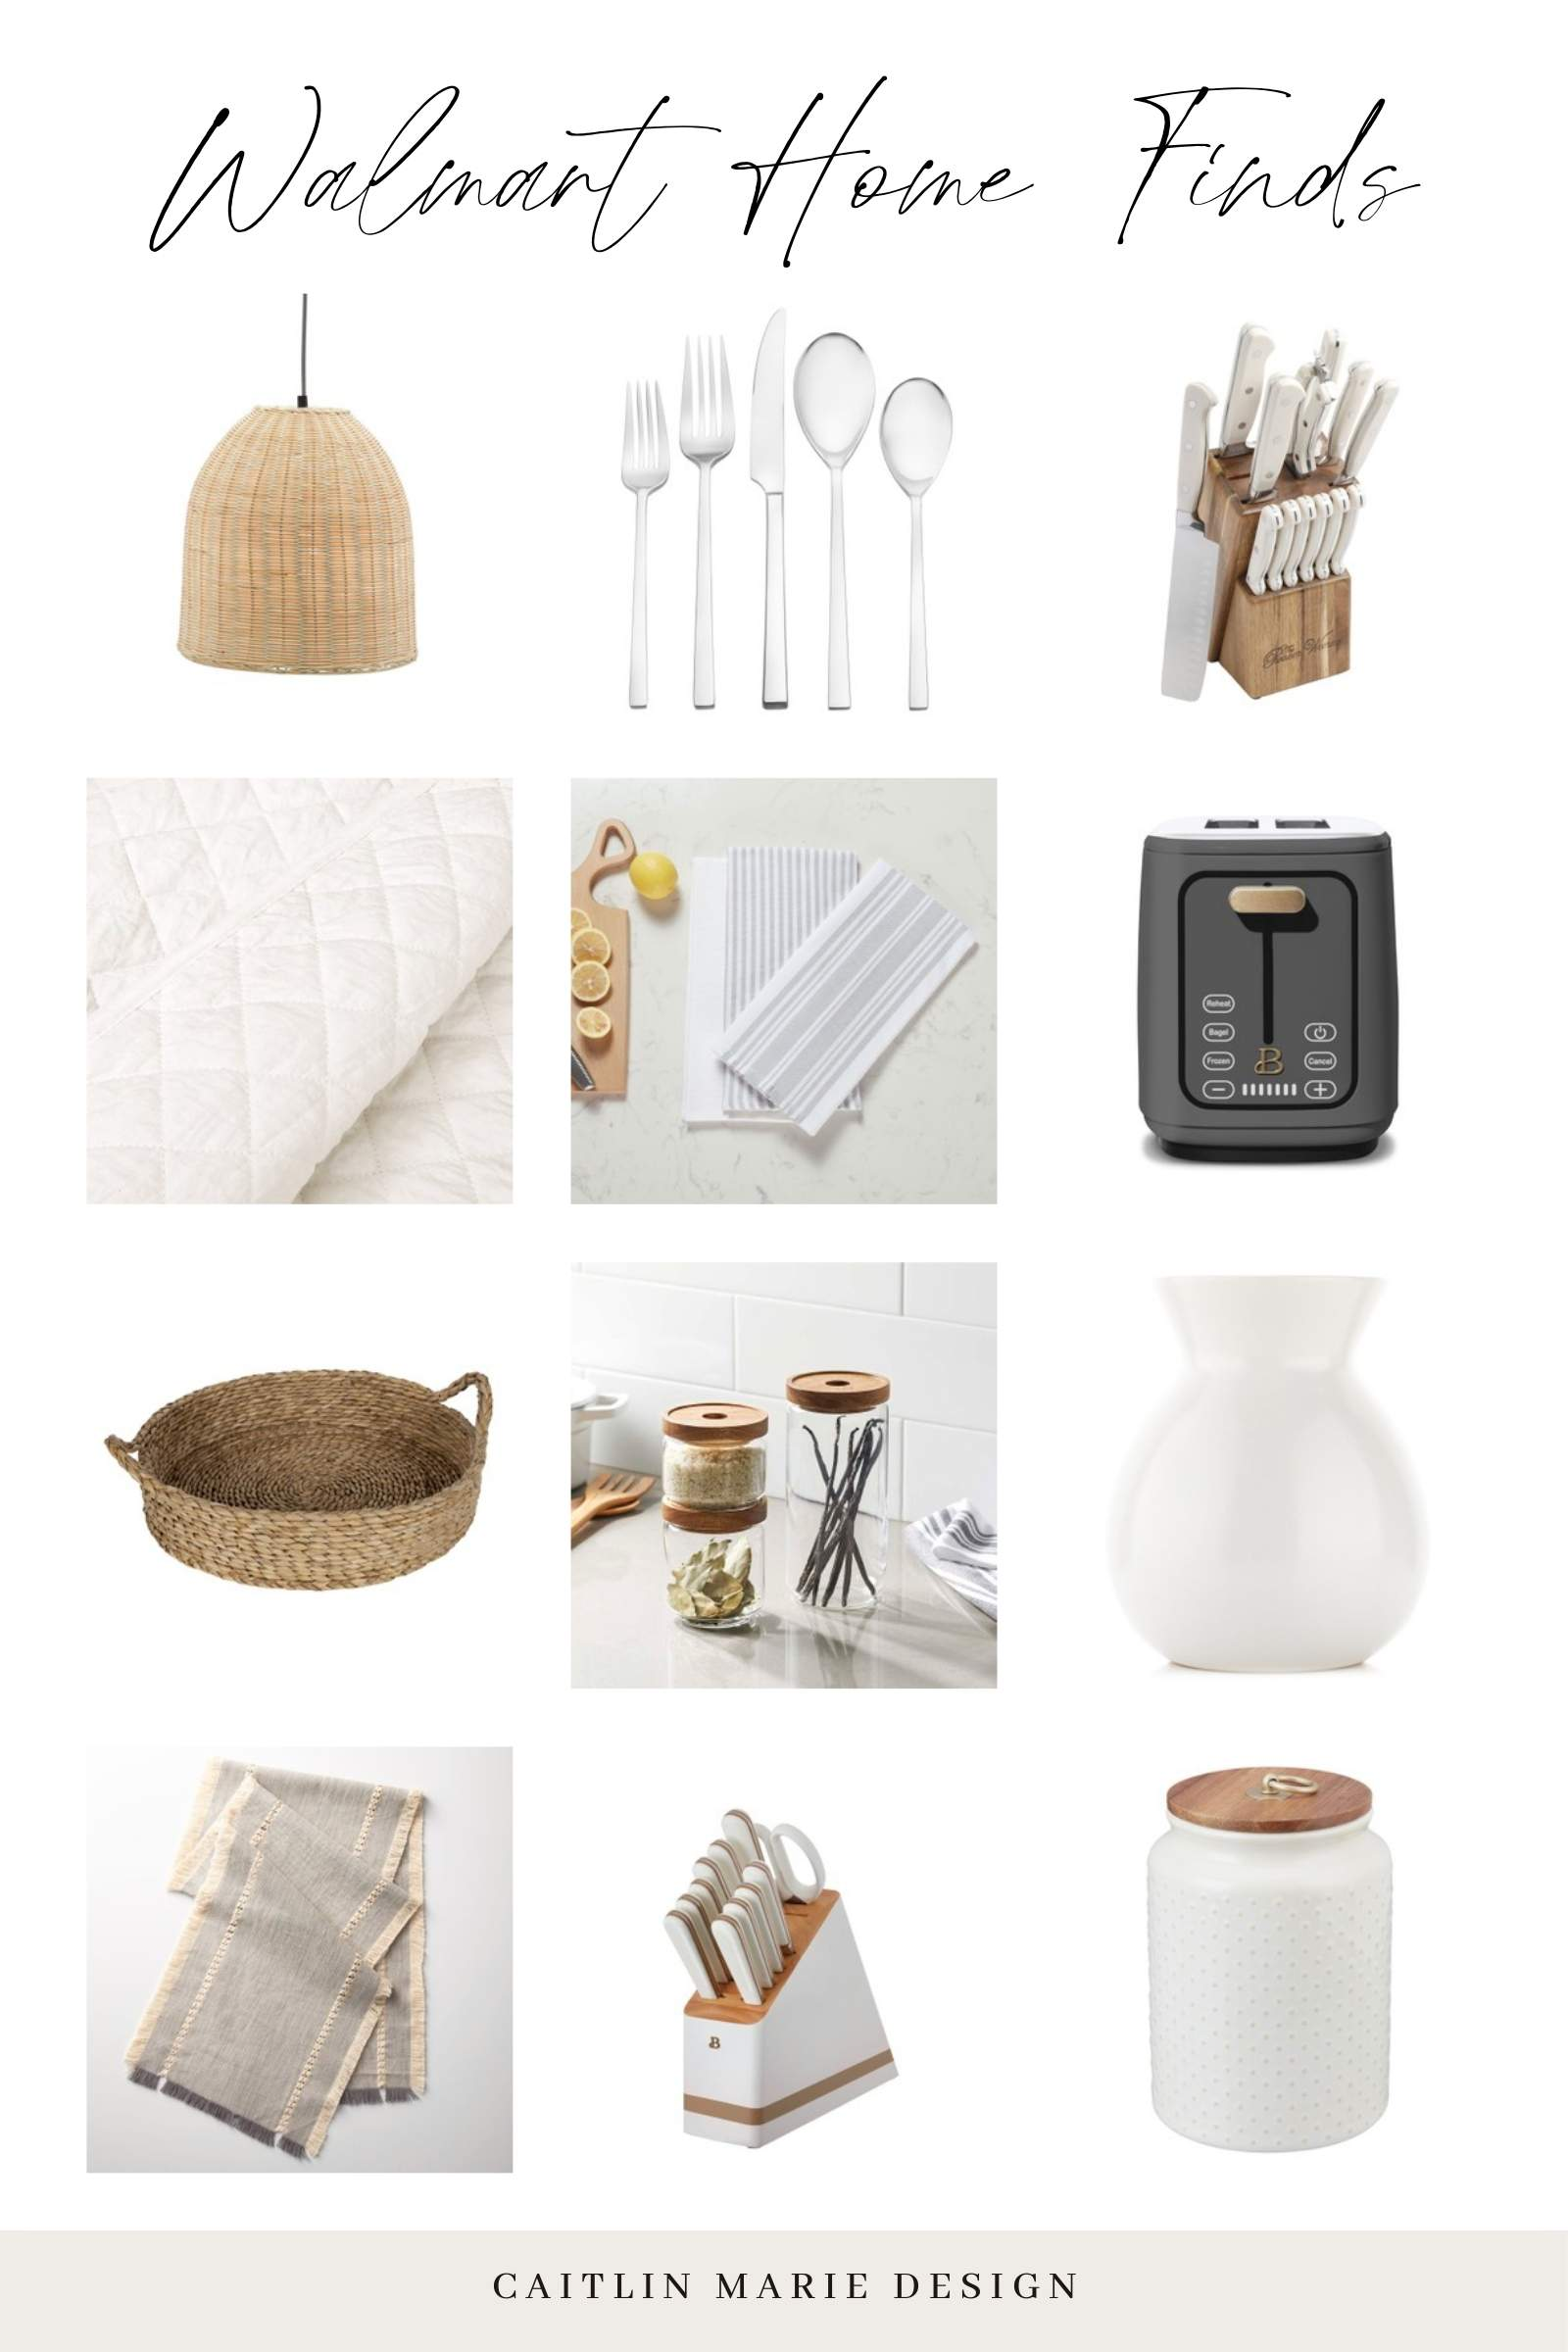 Walmart Home affordable hosting finds - beautiful toaster drew Barrymore appliances, woven tray, canister, affordable white quilt